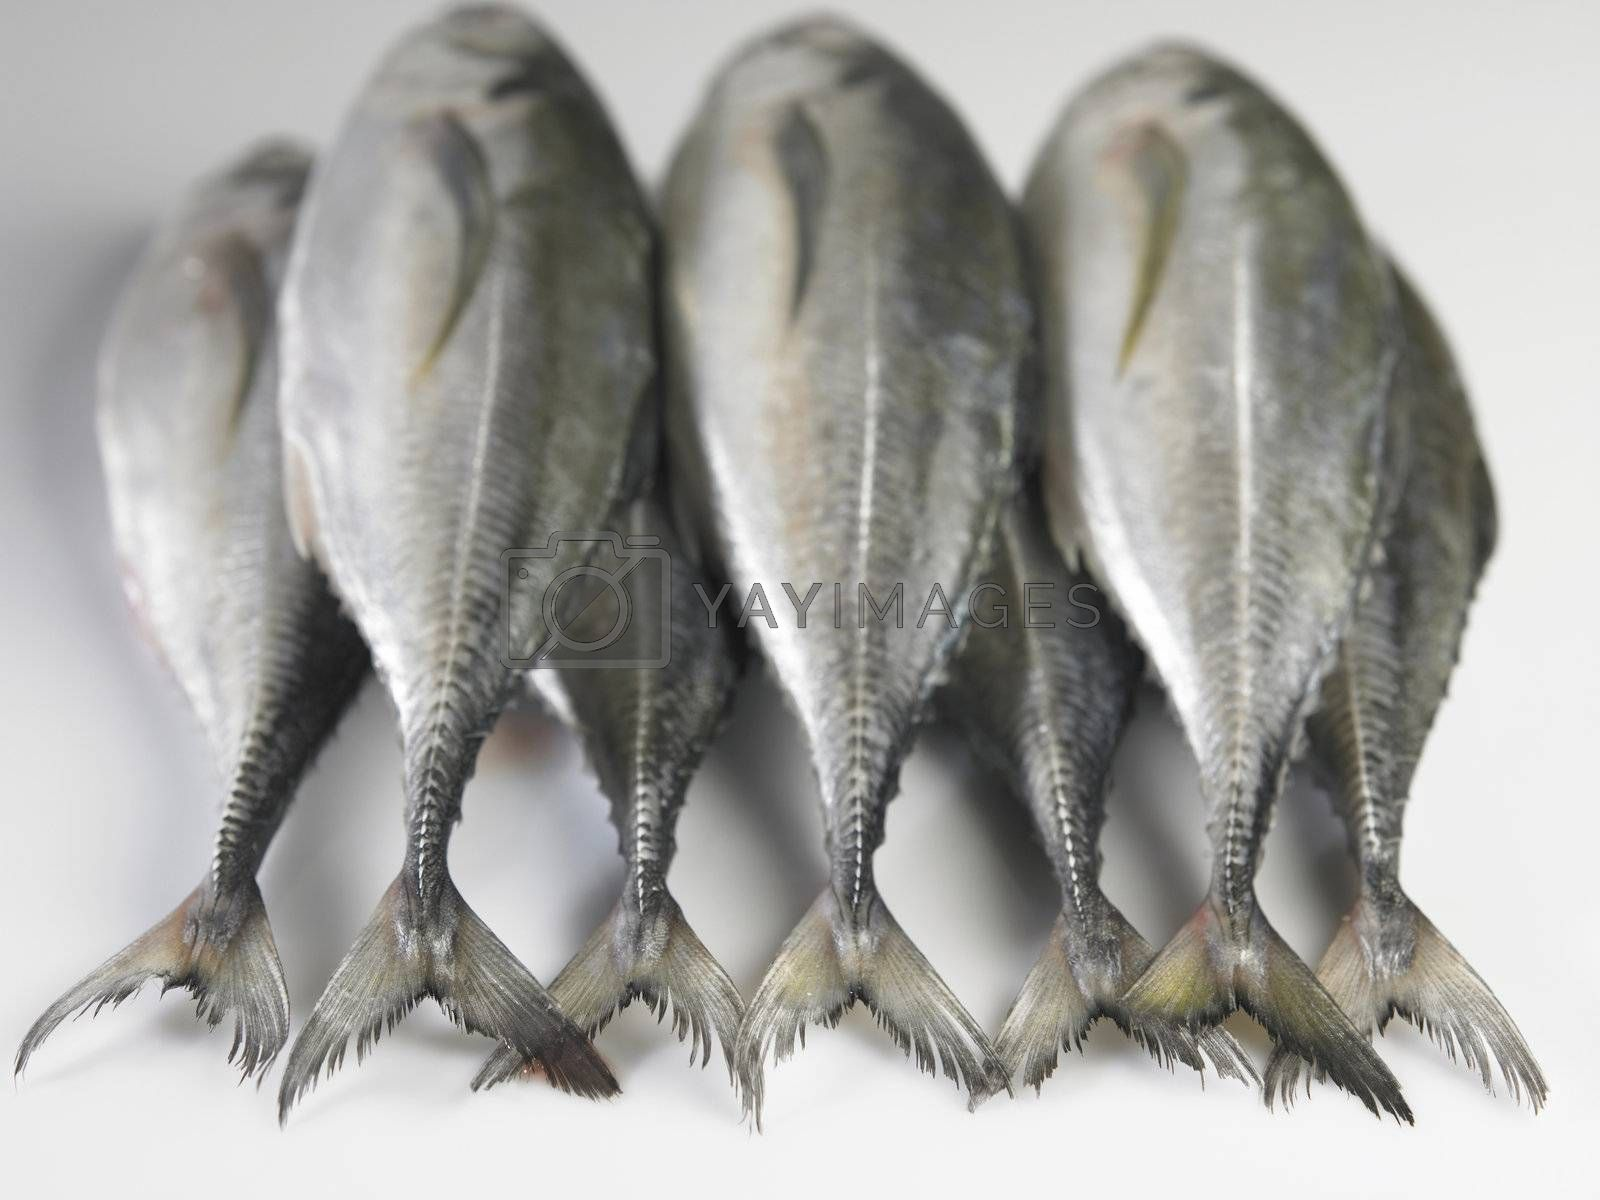 Marine fish collection isolated on plain background.